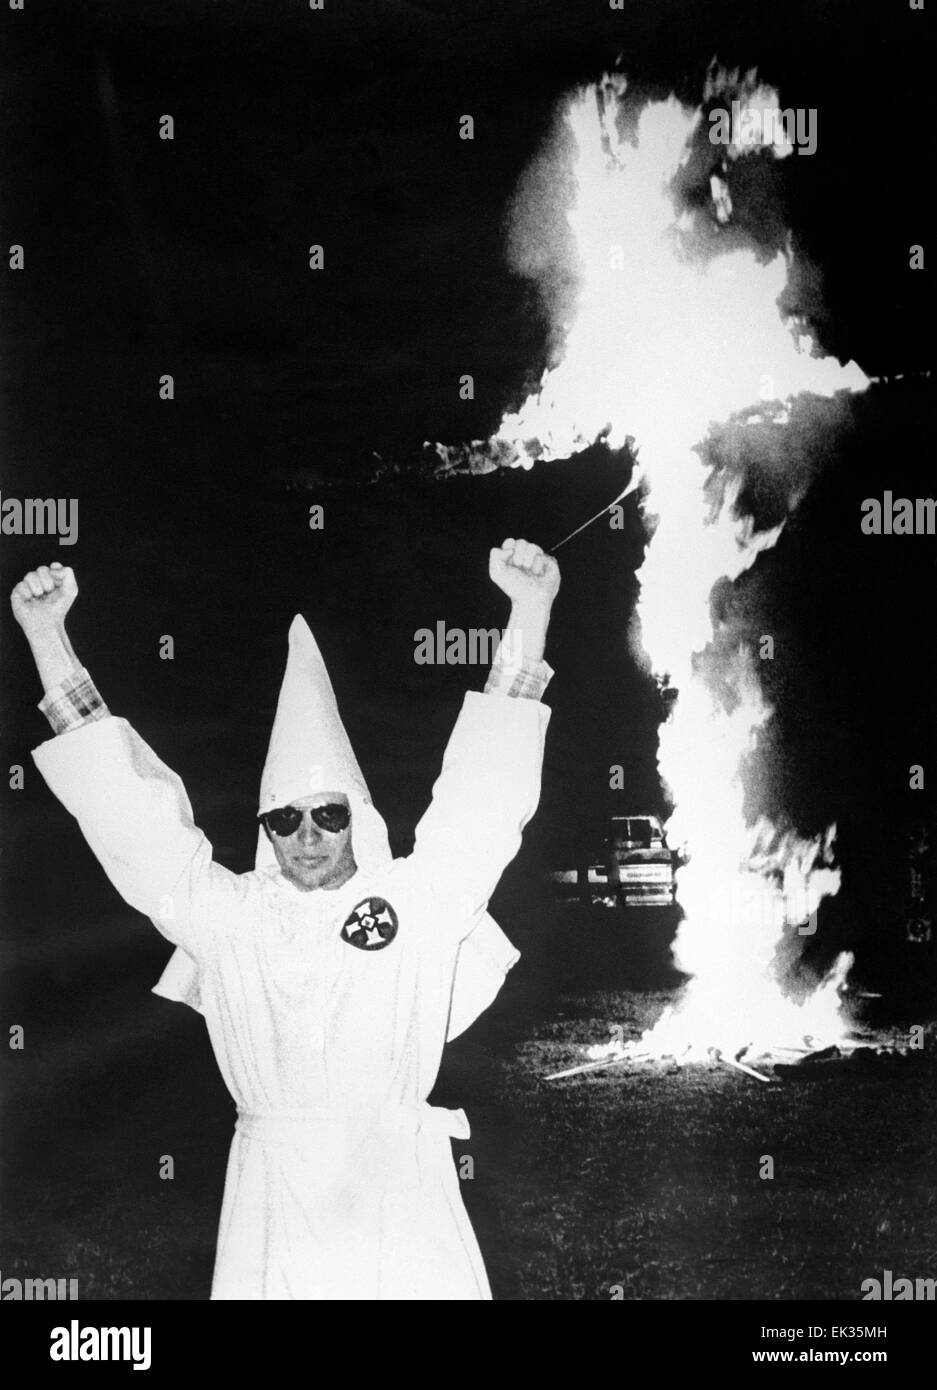 a history of white supremacy and the ku klux klan in the united states Active hate groups in the united states in white nationalist groups espouse white supremacy or white separatism but united white knights of the ku klux klan.